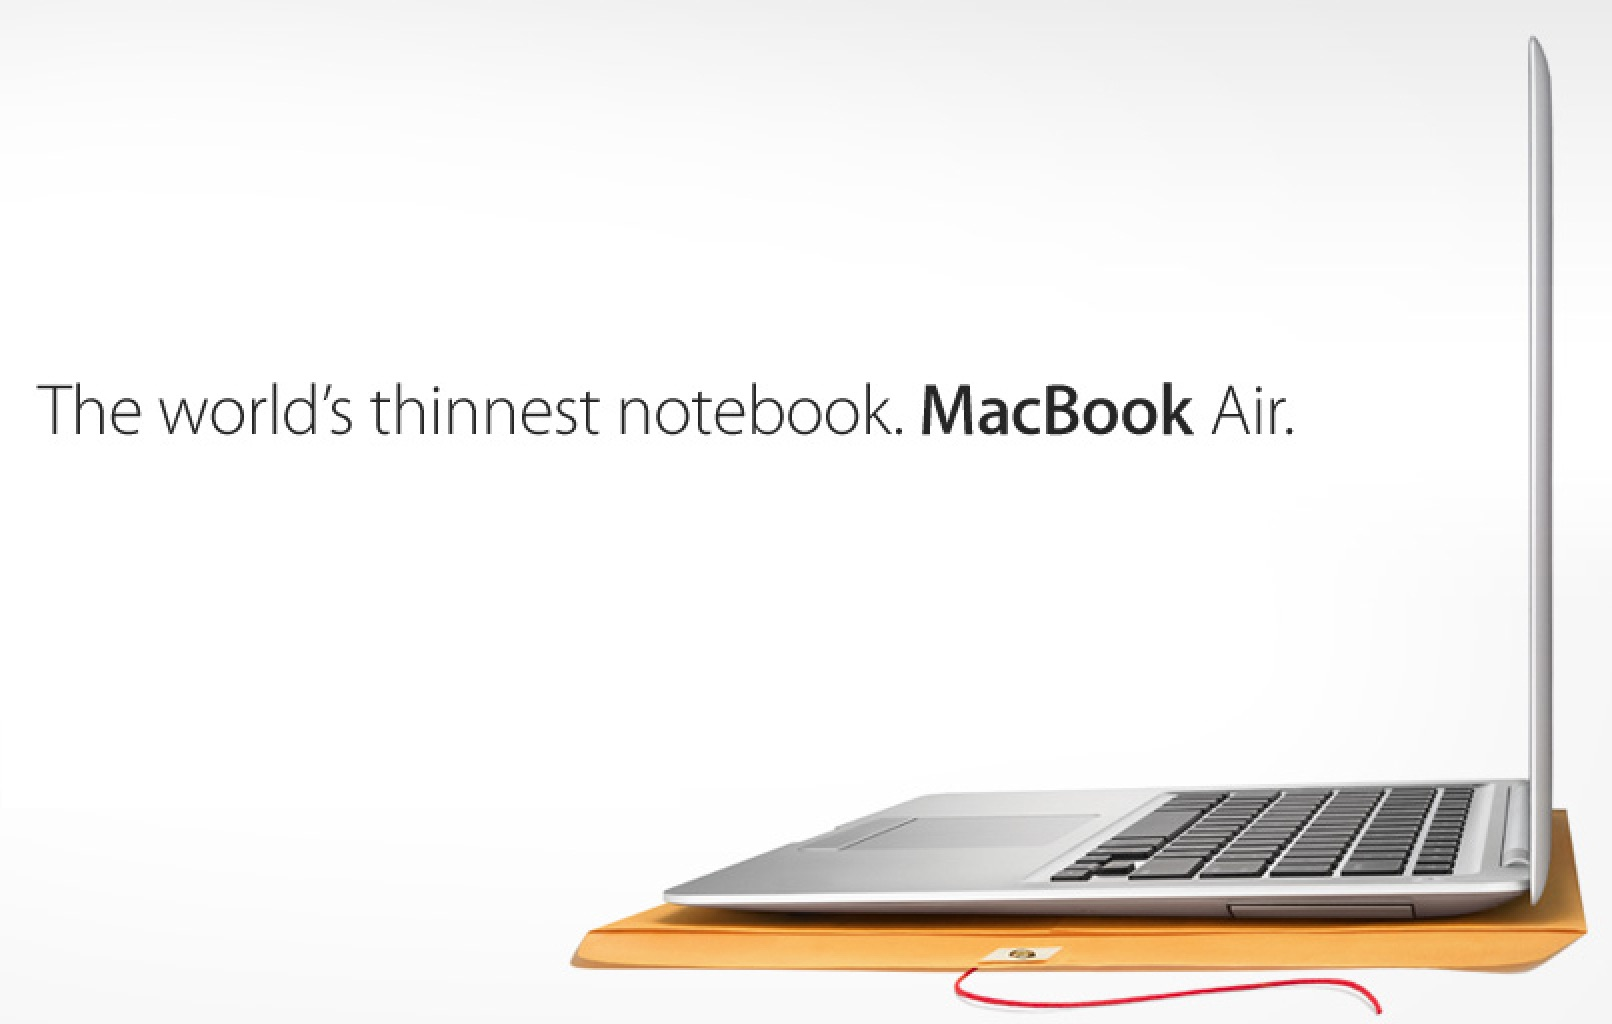 A plain manila envelope became a key stage prop for selling the MacBook Air.